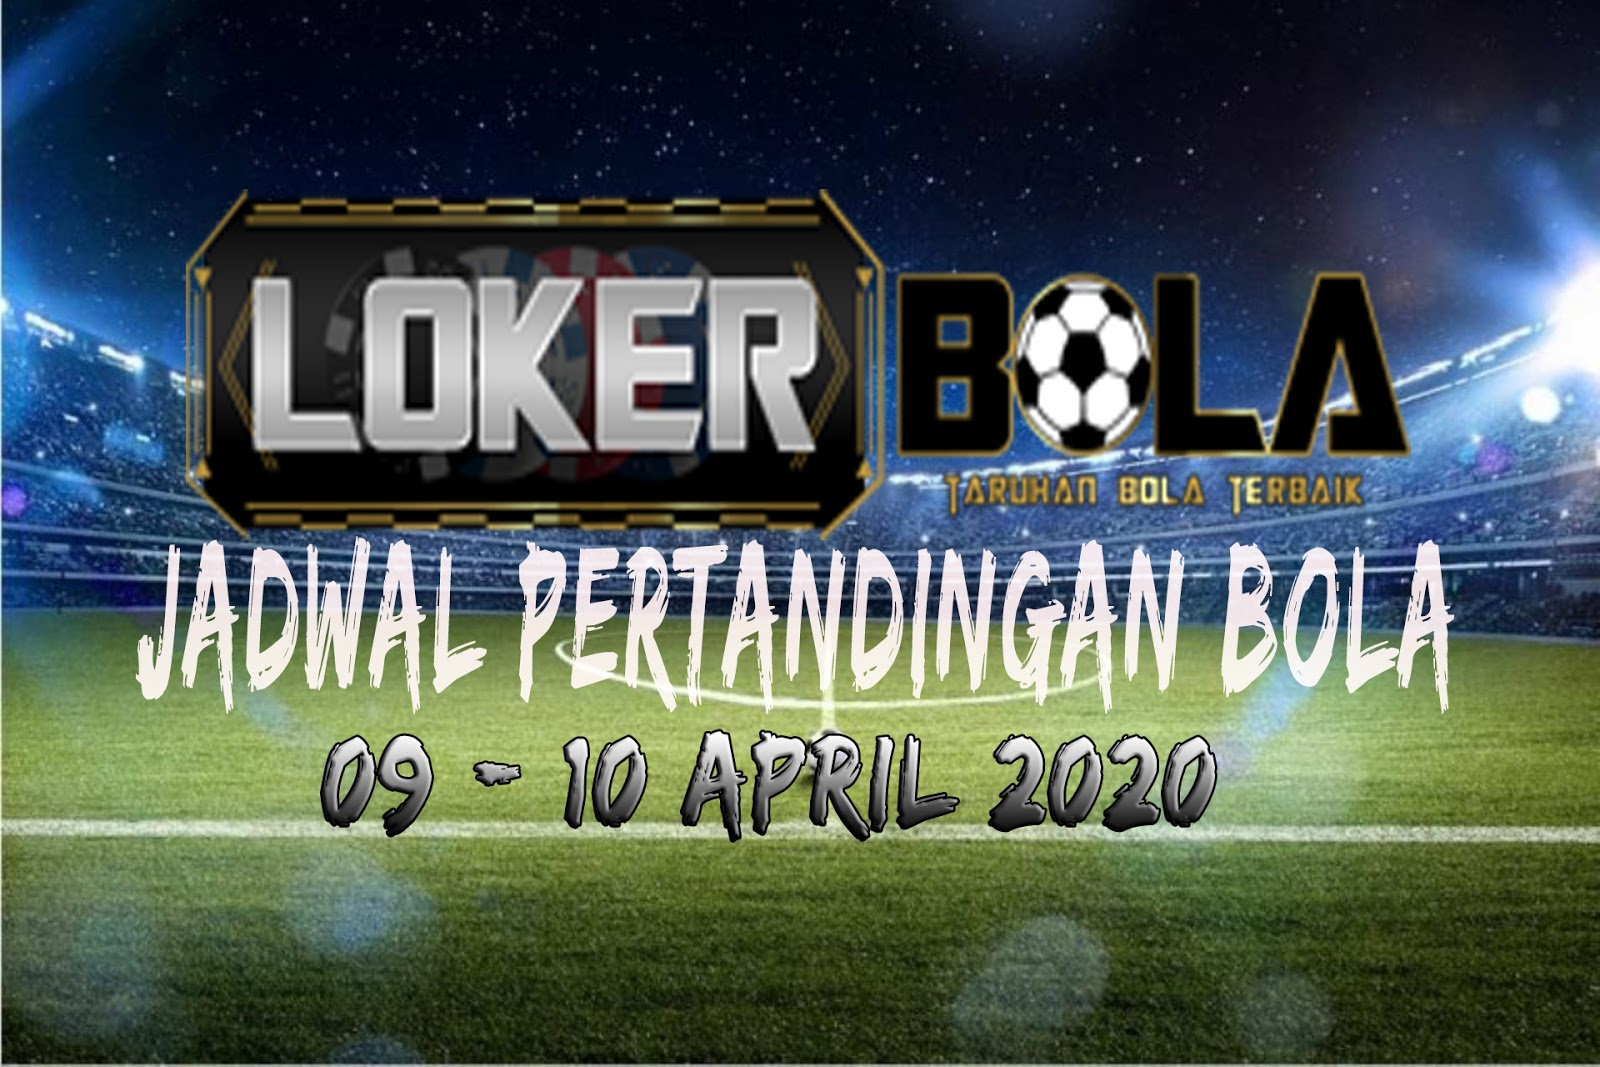 JADWAL PERTANDINGAN BOLA 09 – 10 APRIL 2020